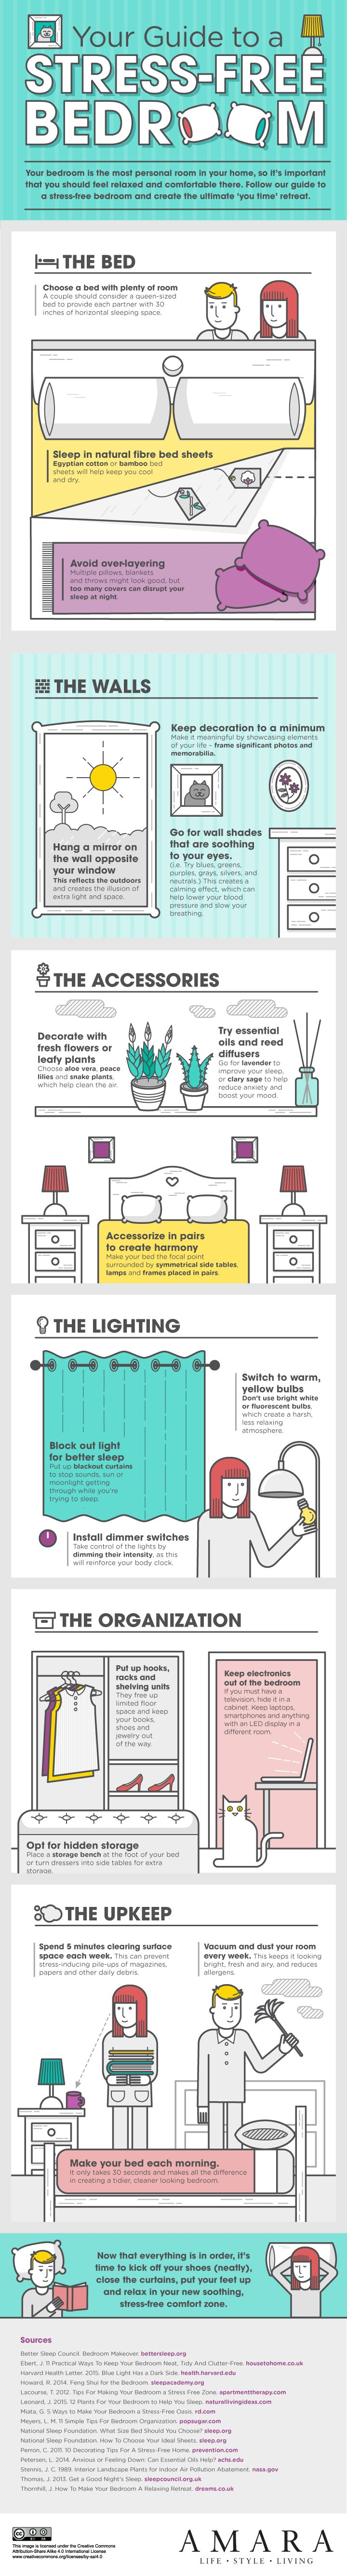 Your Guide to a Stress-free Bedroom #Infographic #Health #Stress